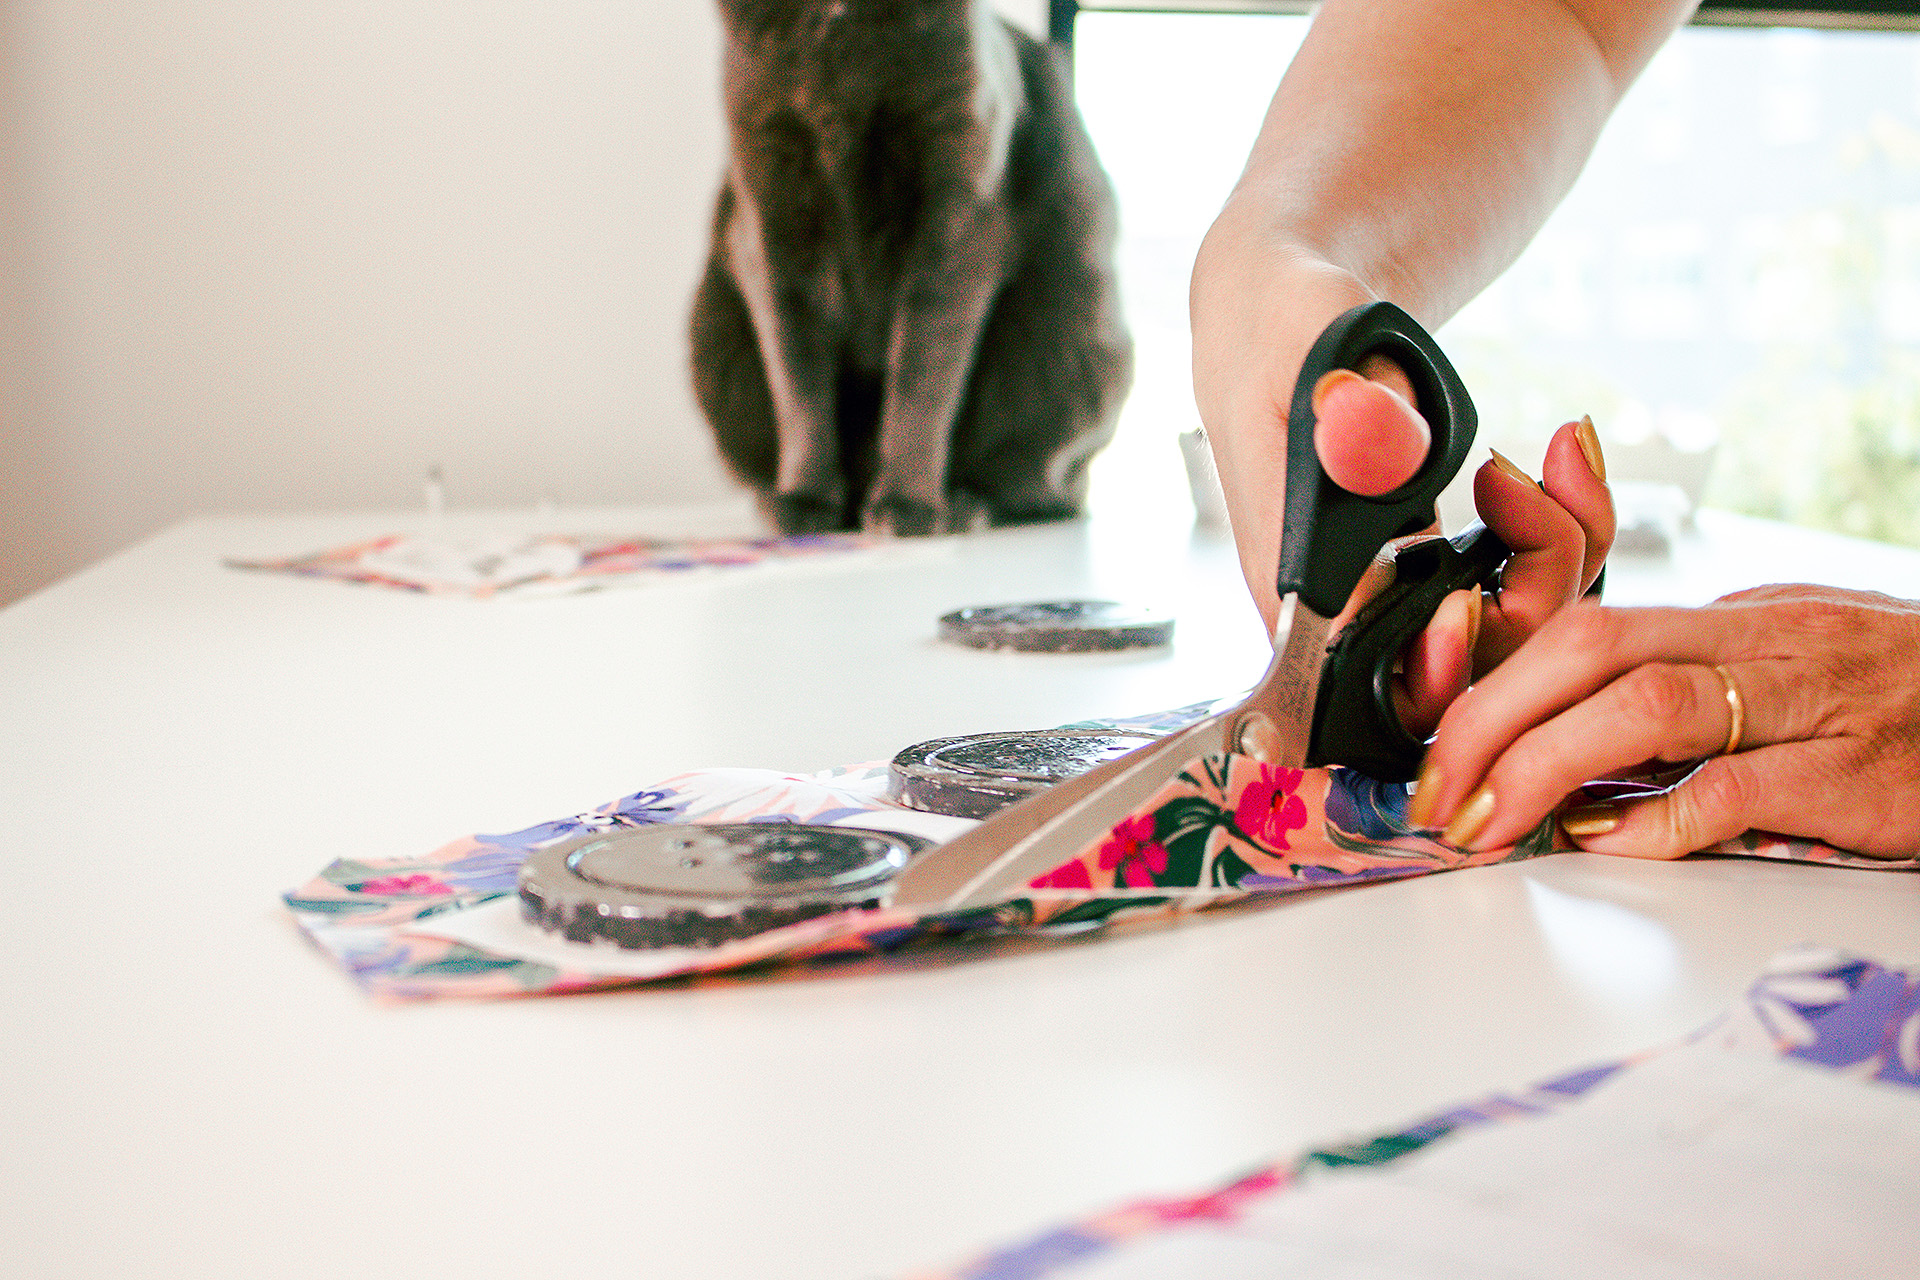 Learning how to sew can be challenging. Learn what the most common problems you'll experience are and how to overcome them.